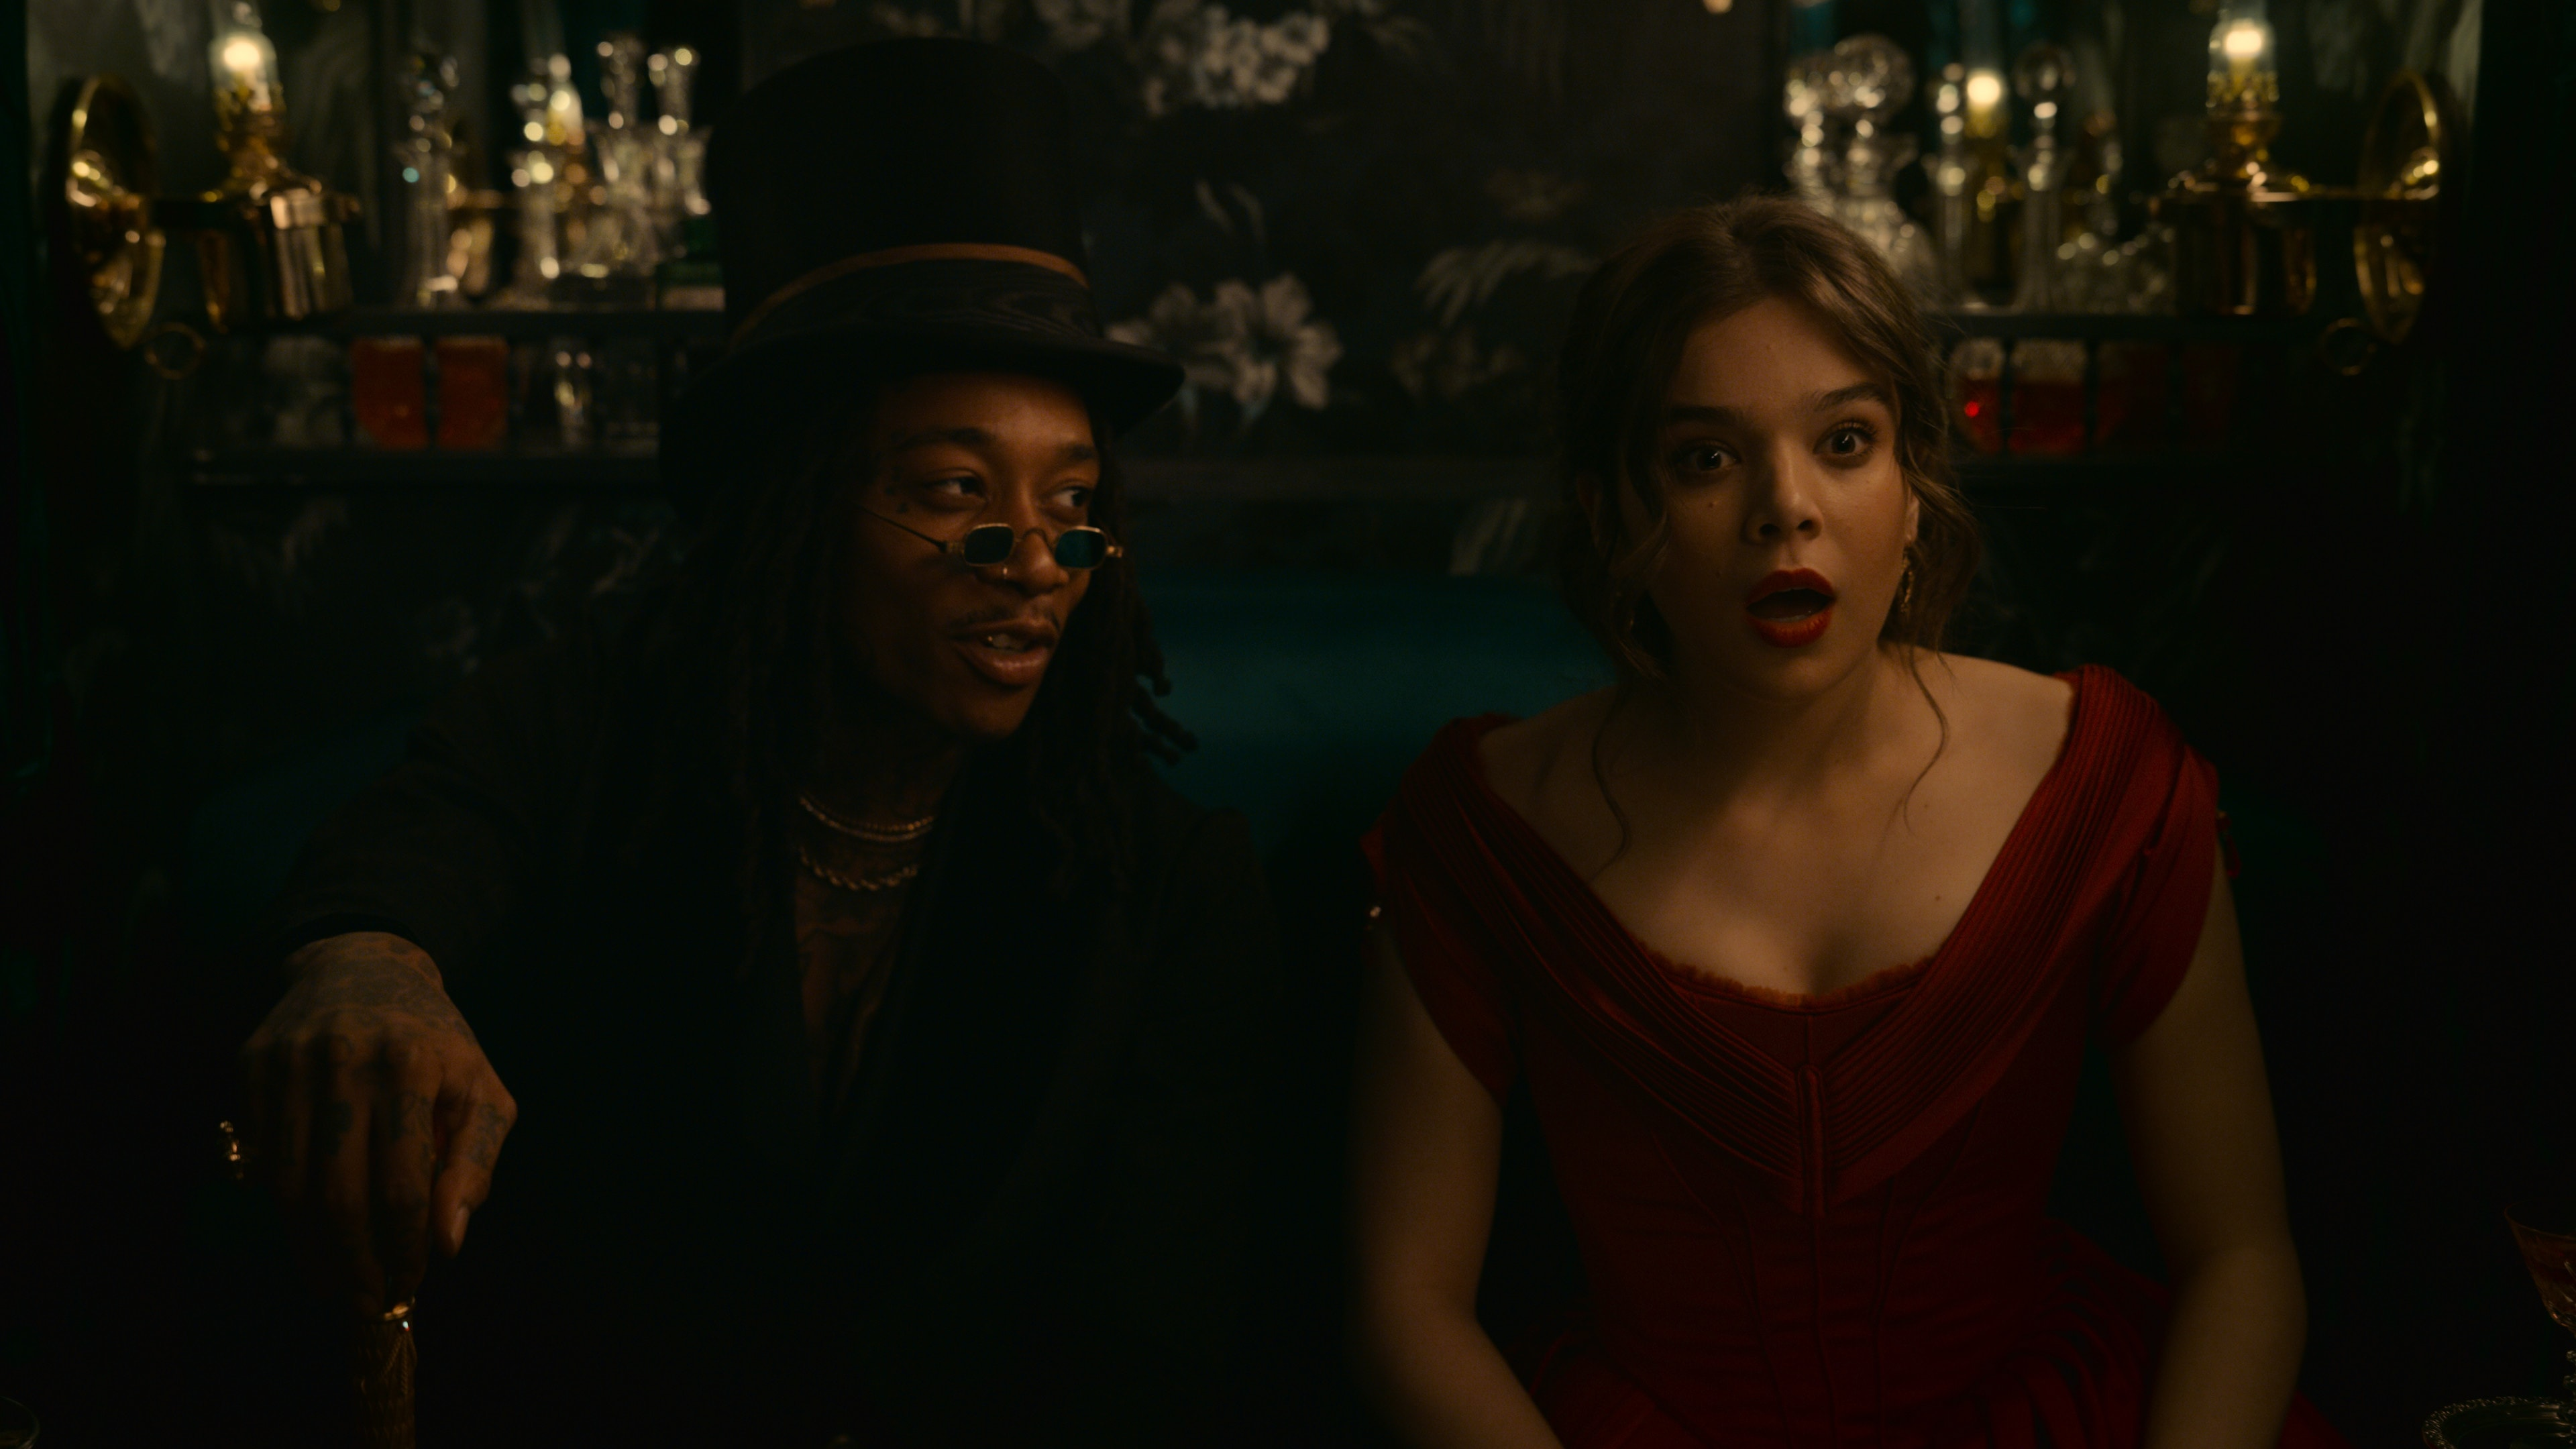 Death (played by Wiz Khalifa, left) is back to see Emily (Hailee Steinfeld) for some reason in Dickinson